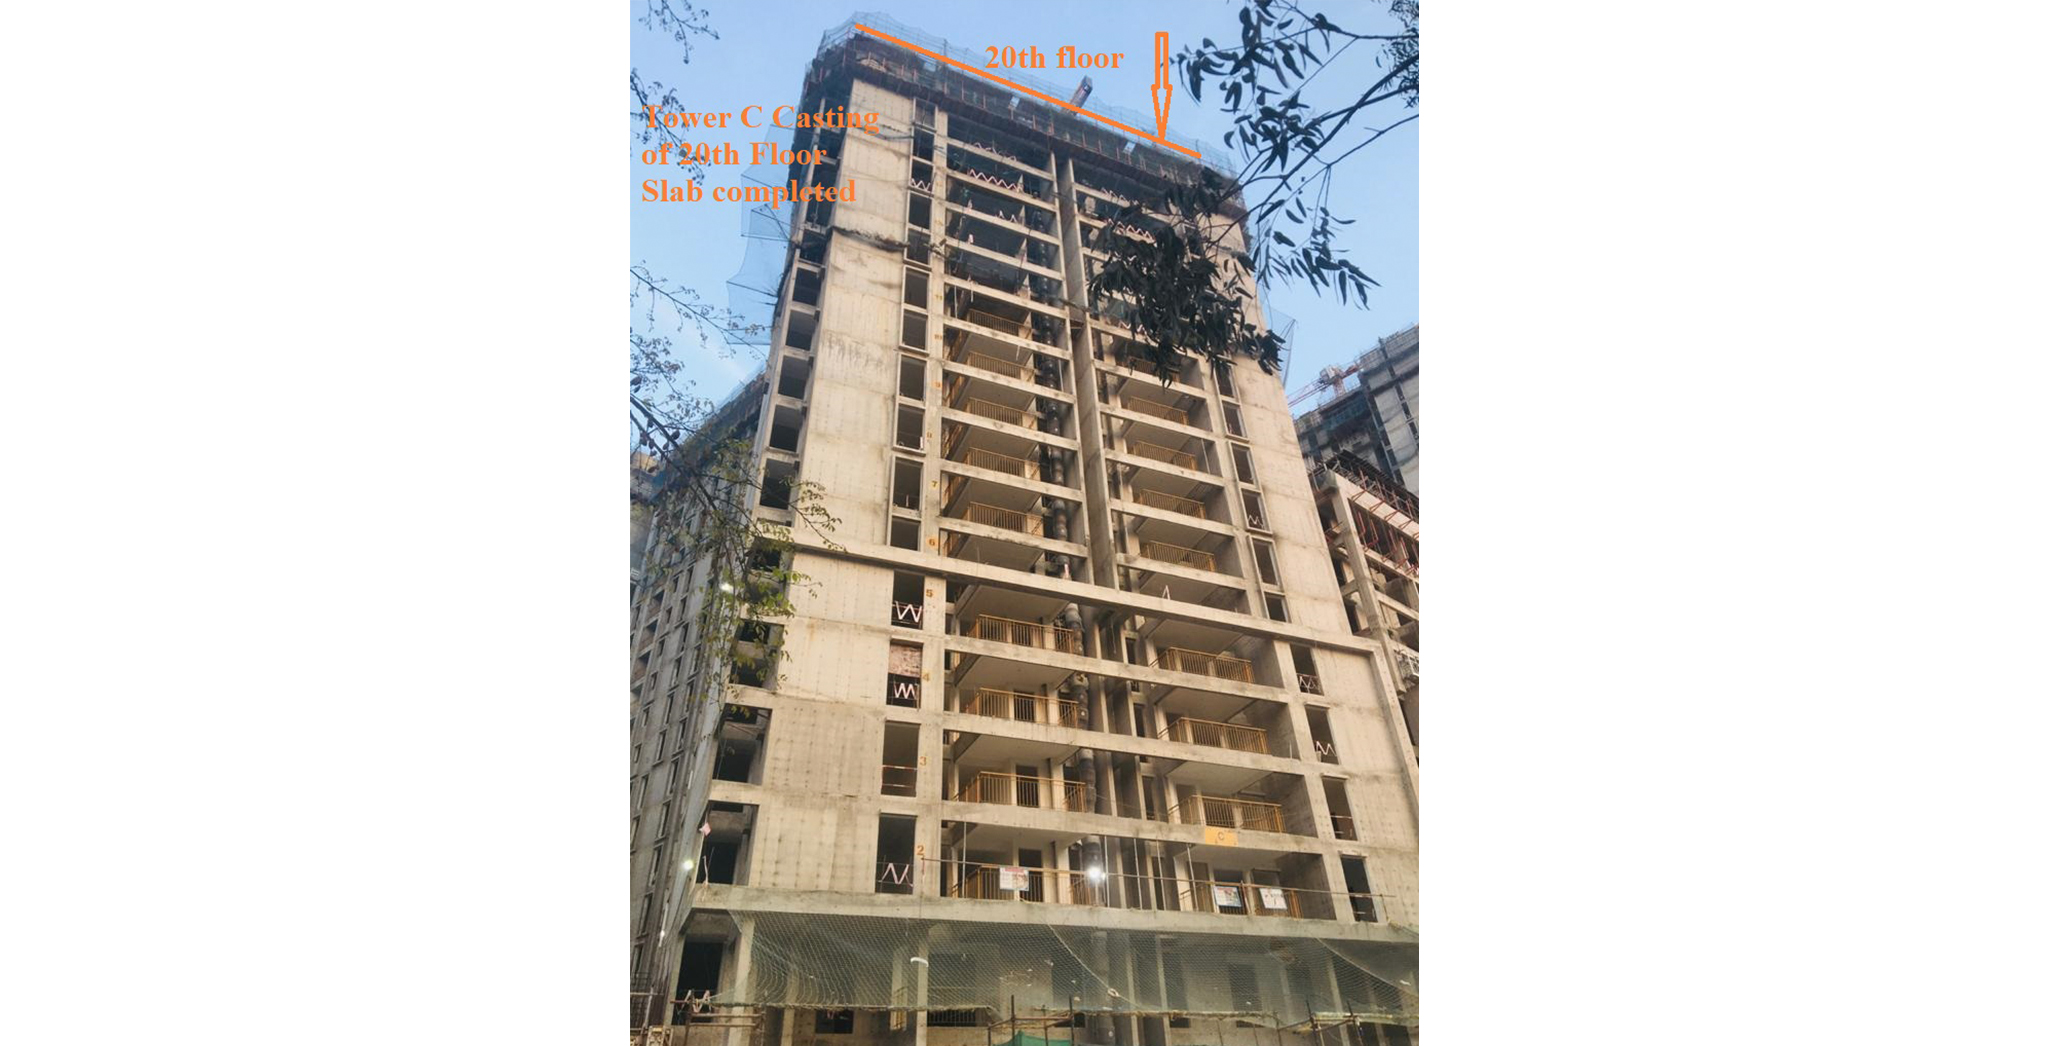 Apr 2021 - Serene C – On Casting of 20th  Floor Slab - Status as of 15th April 2020